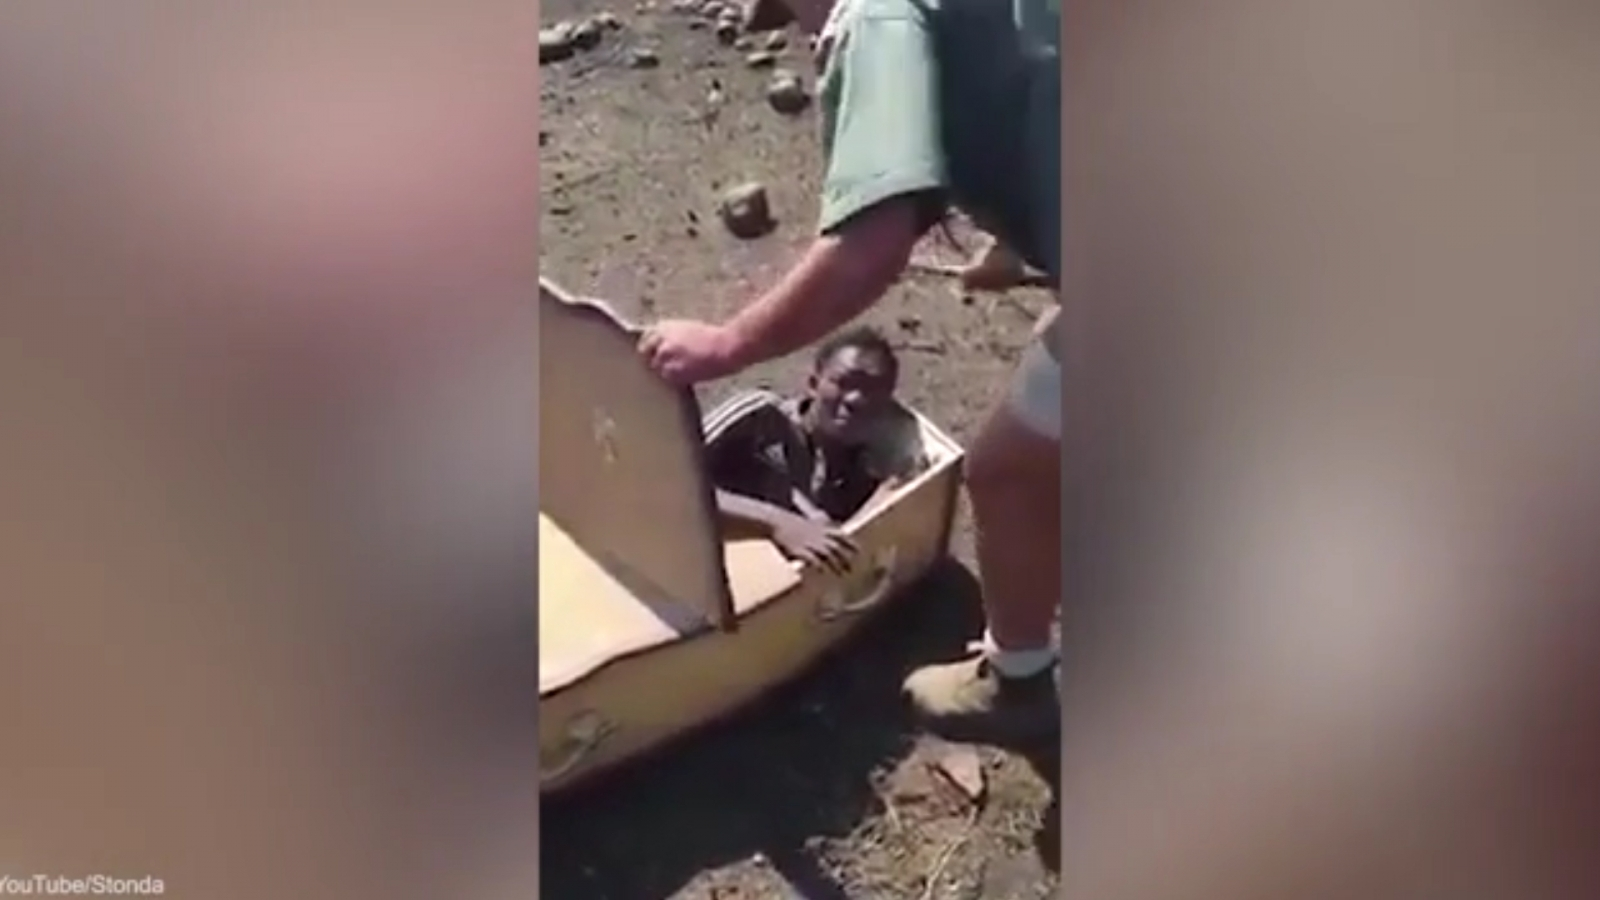 Disturbing video shows two white farmers forcing a black man into a coffin